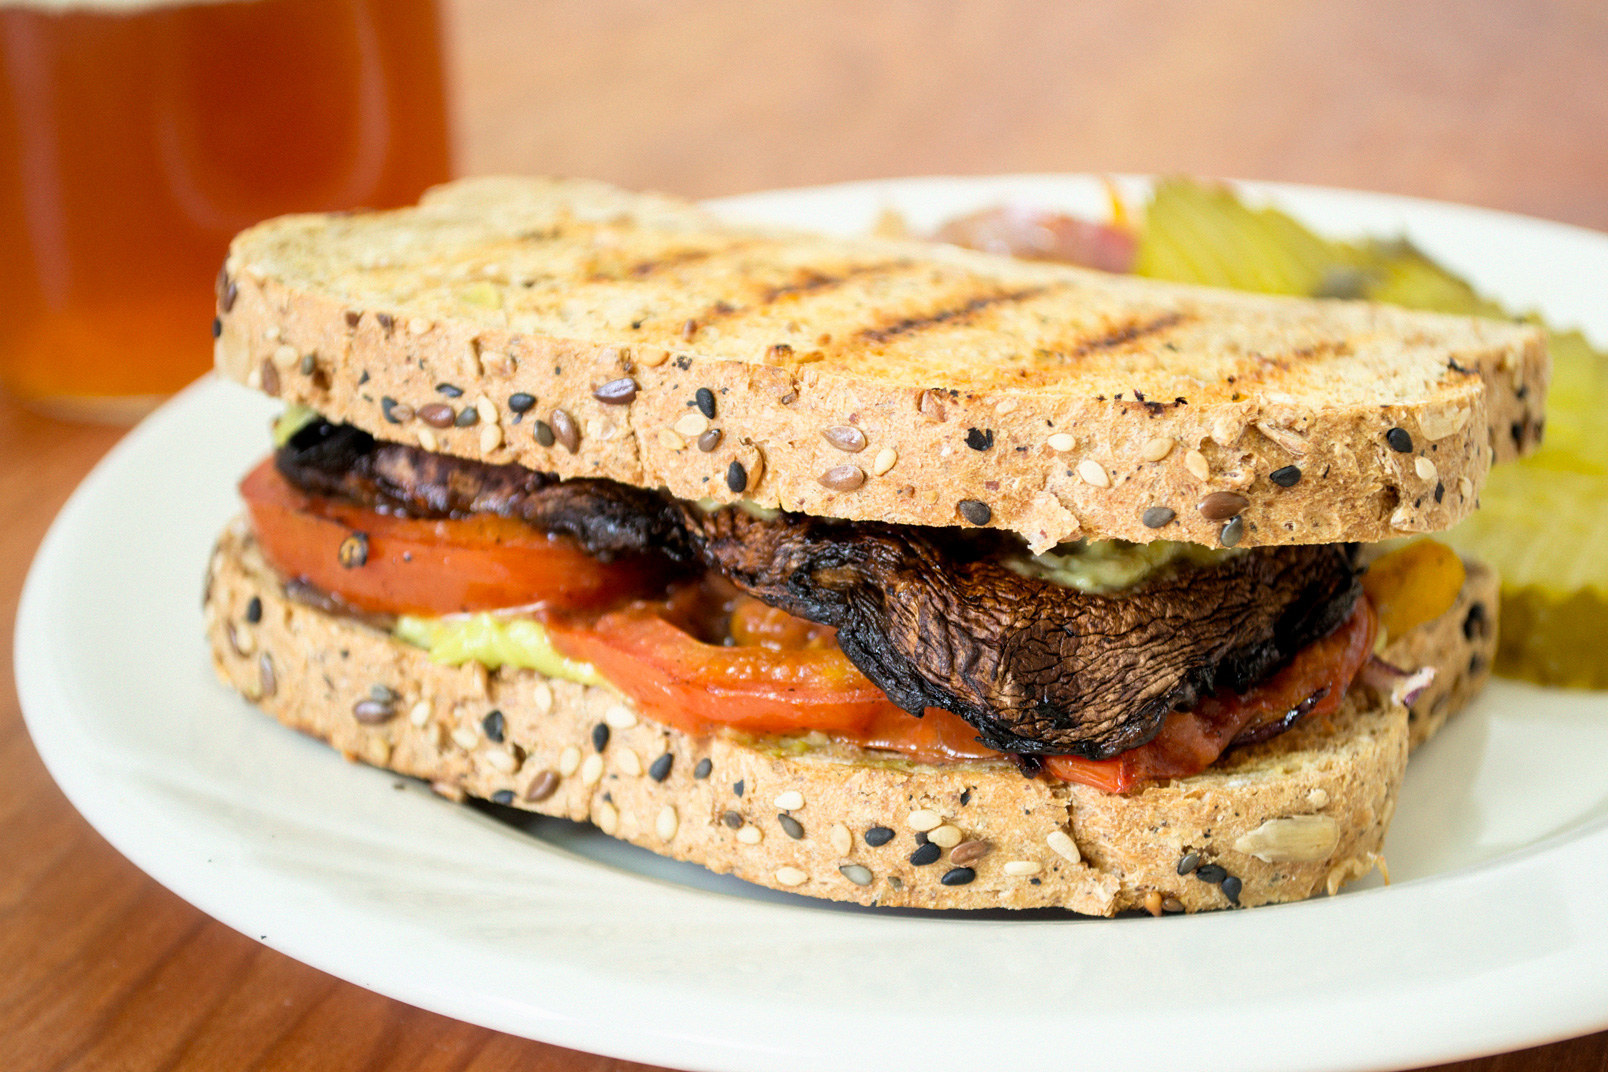 Grilled Portobello Sandwich with Avocado Aioli